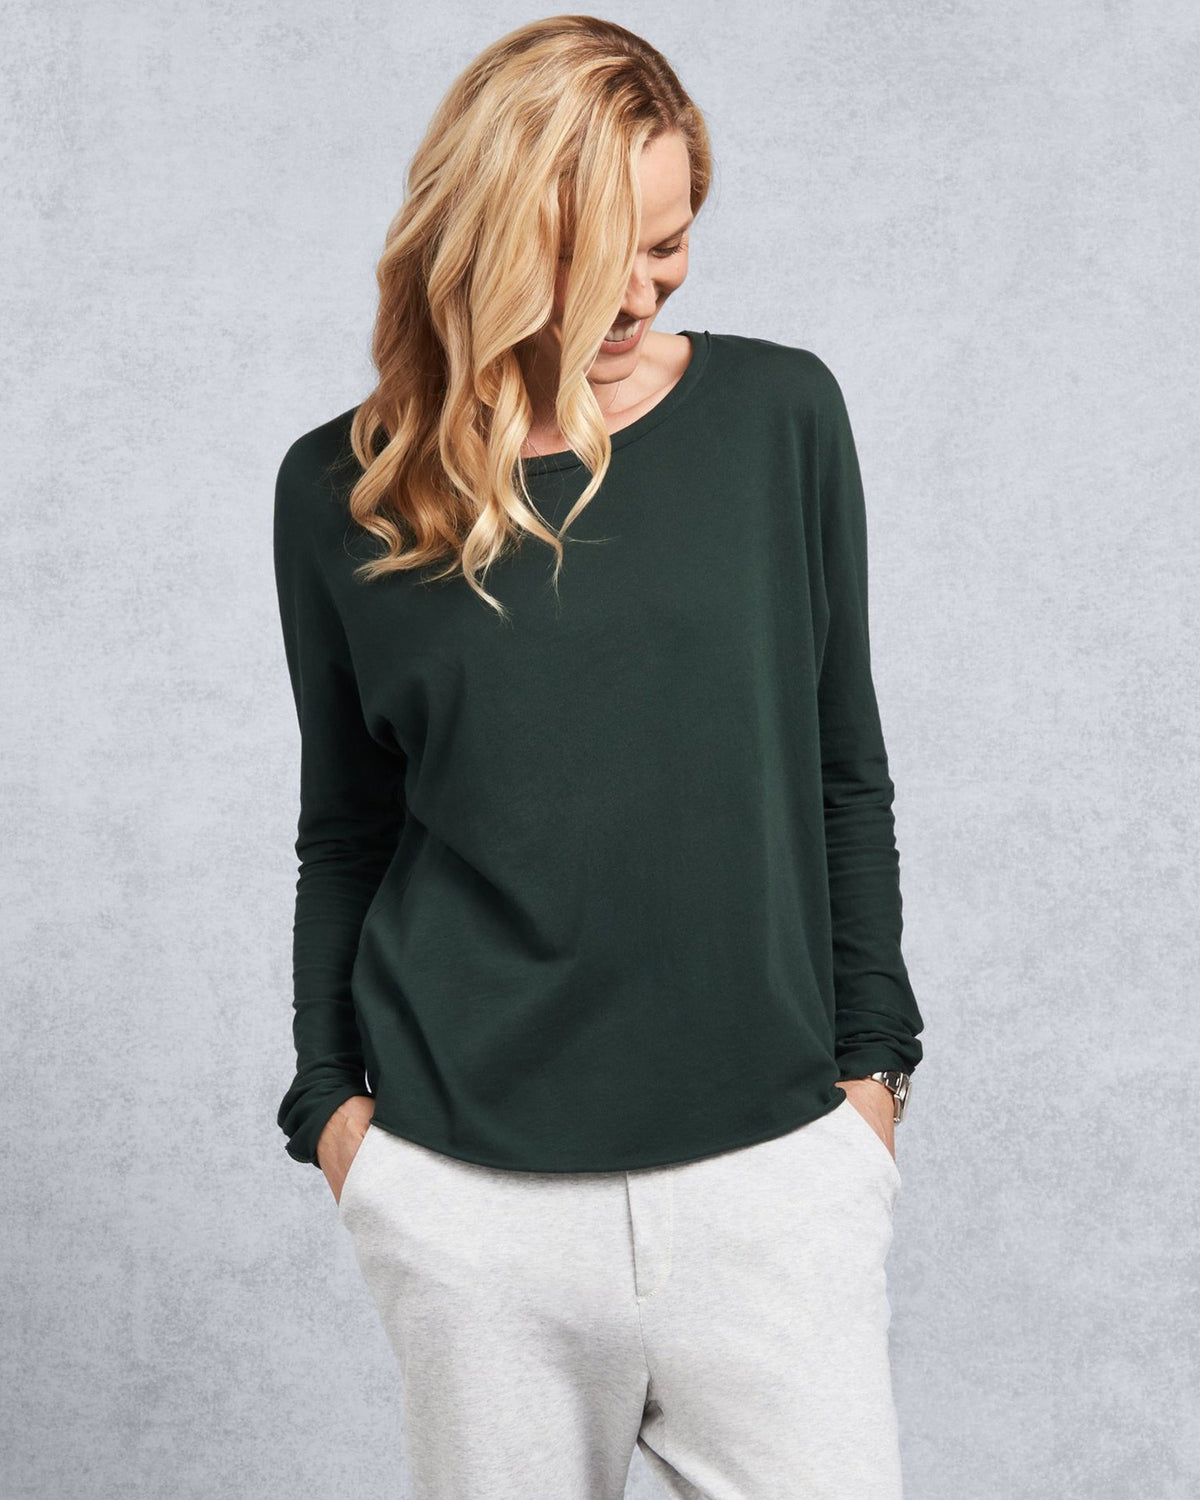 Tee Lab Clothing Continuous Sleeve Tee in British Racing Green